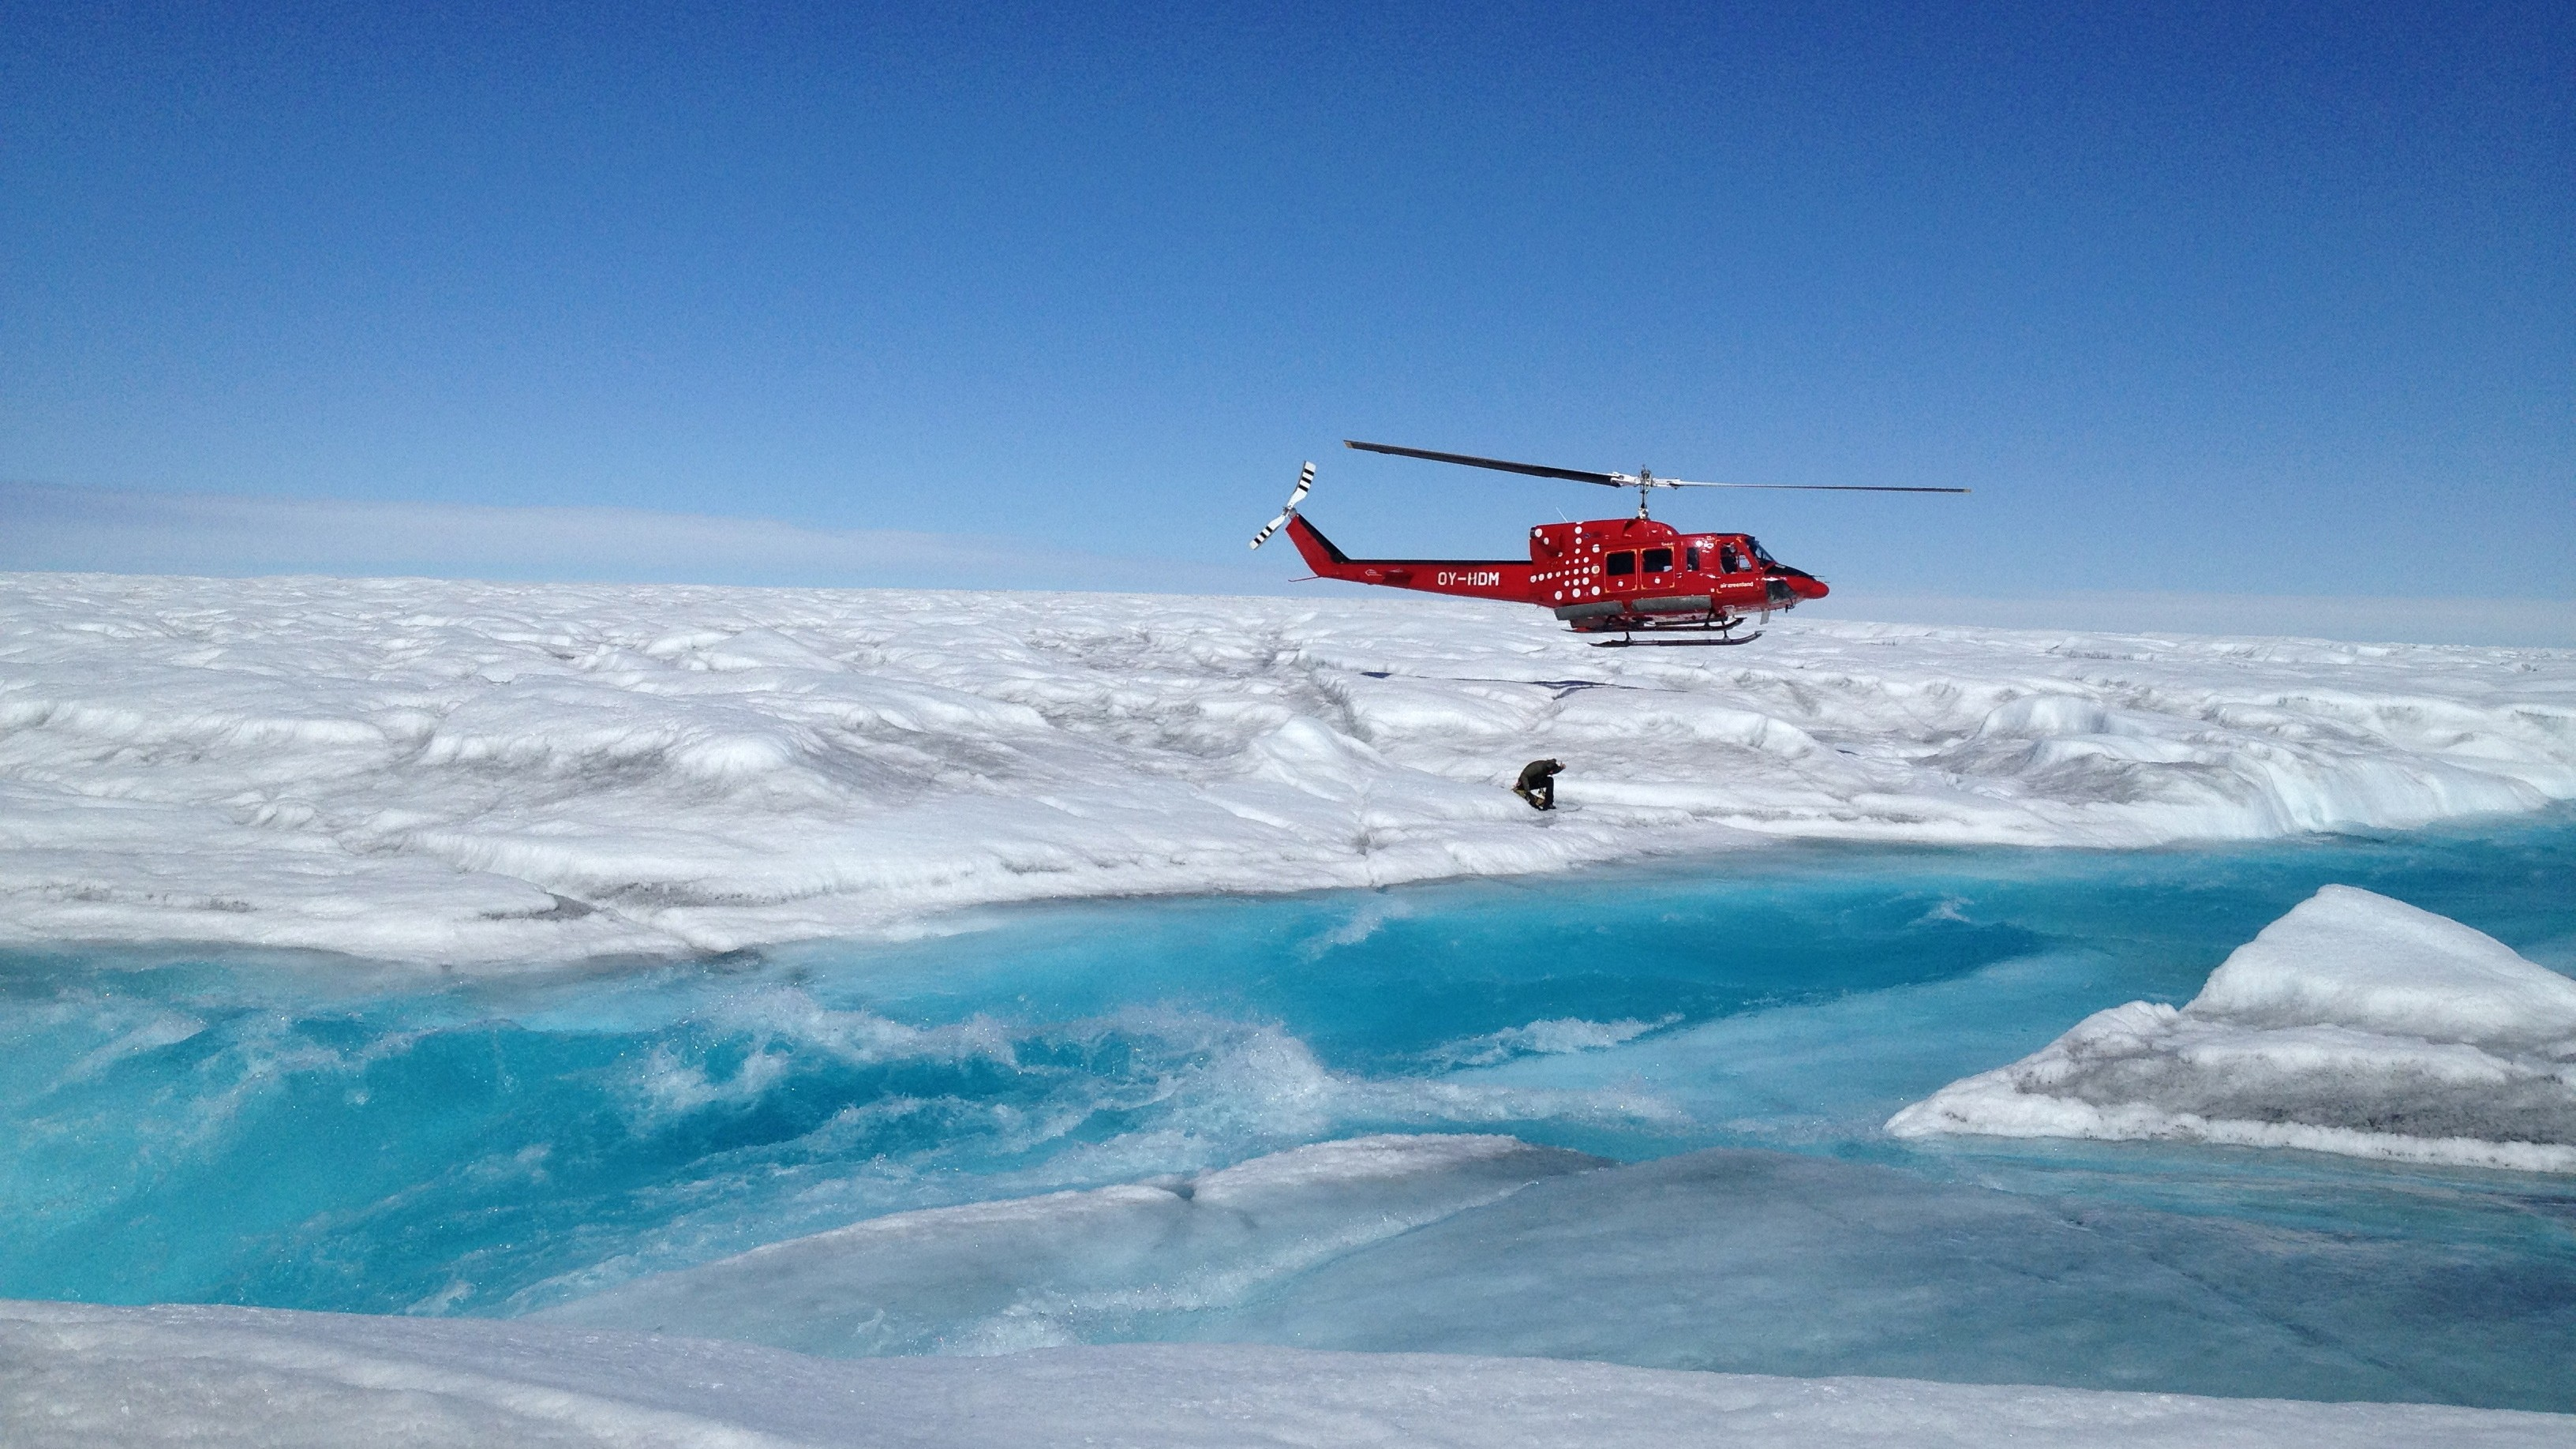 Video: Here's How Greenland's Melting Ice Sheet Is Contributing to Rising Sea Levels